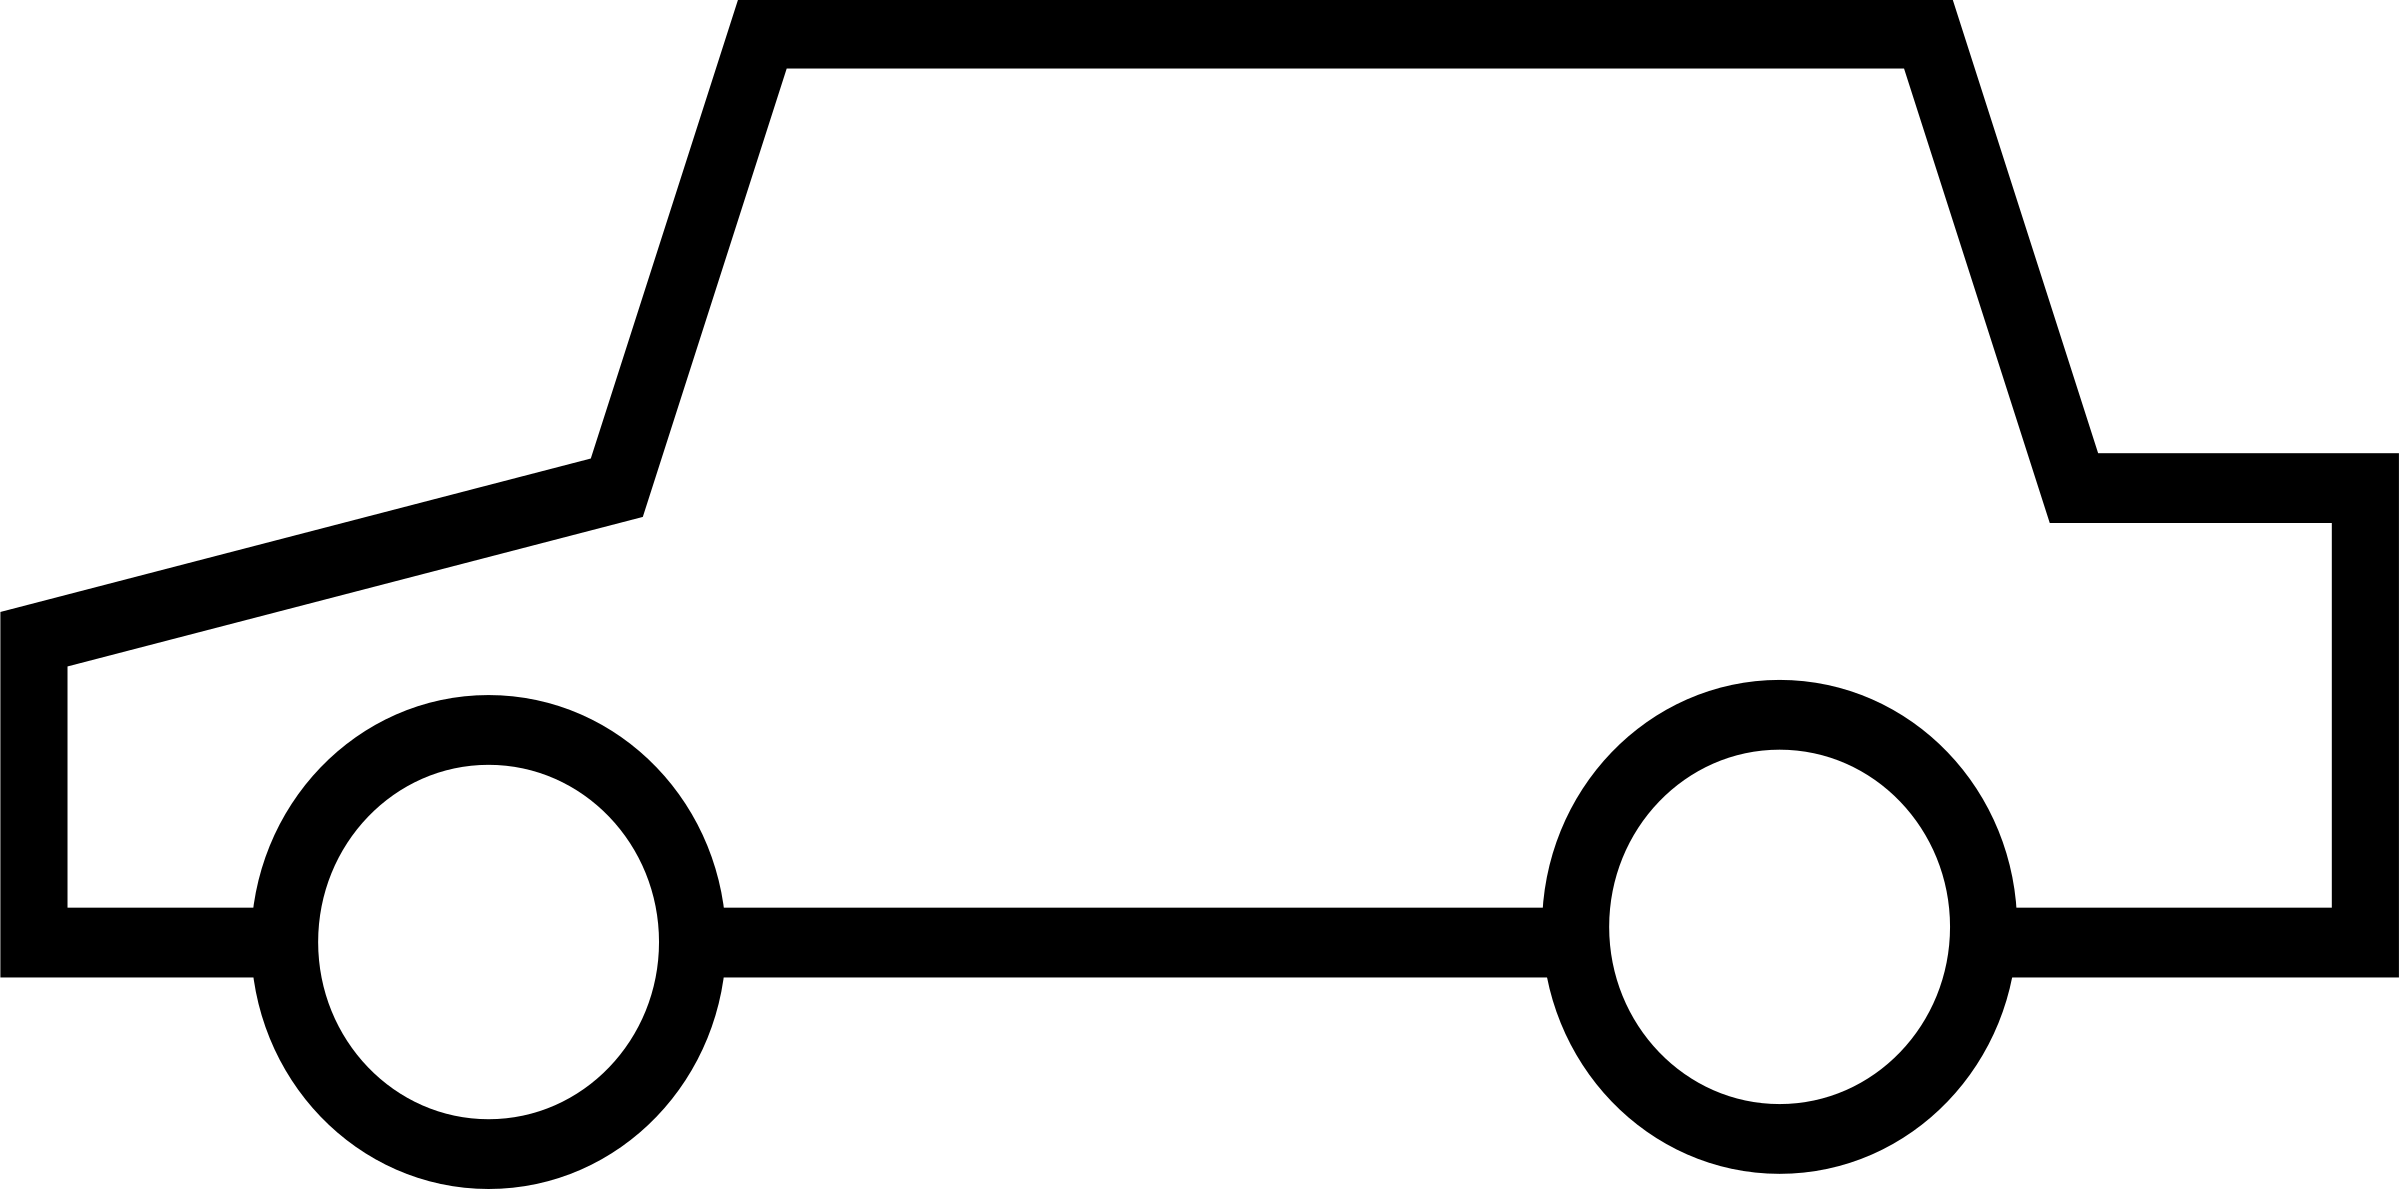 Simple car icon by klaasdc